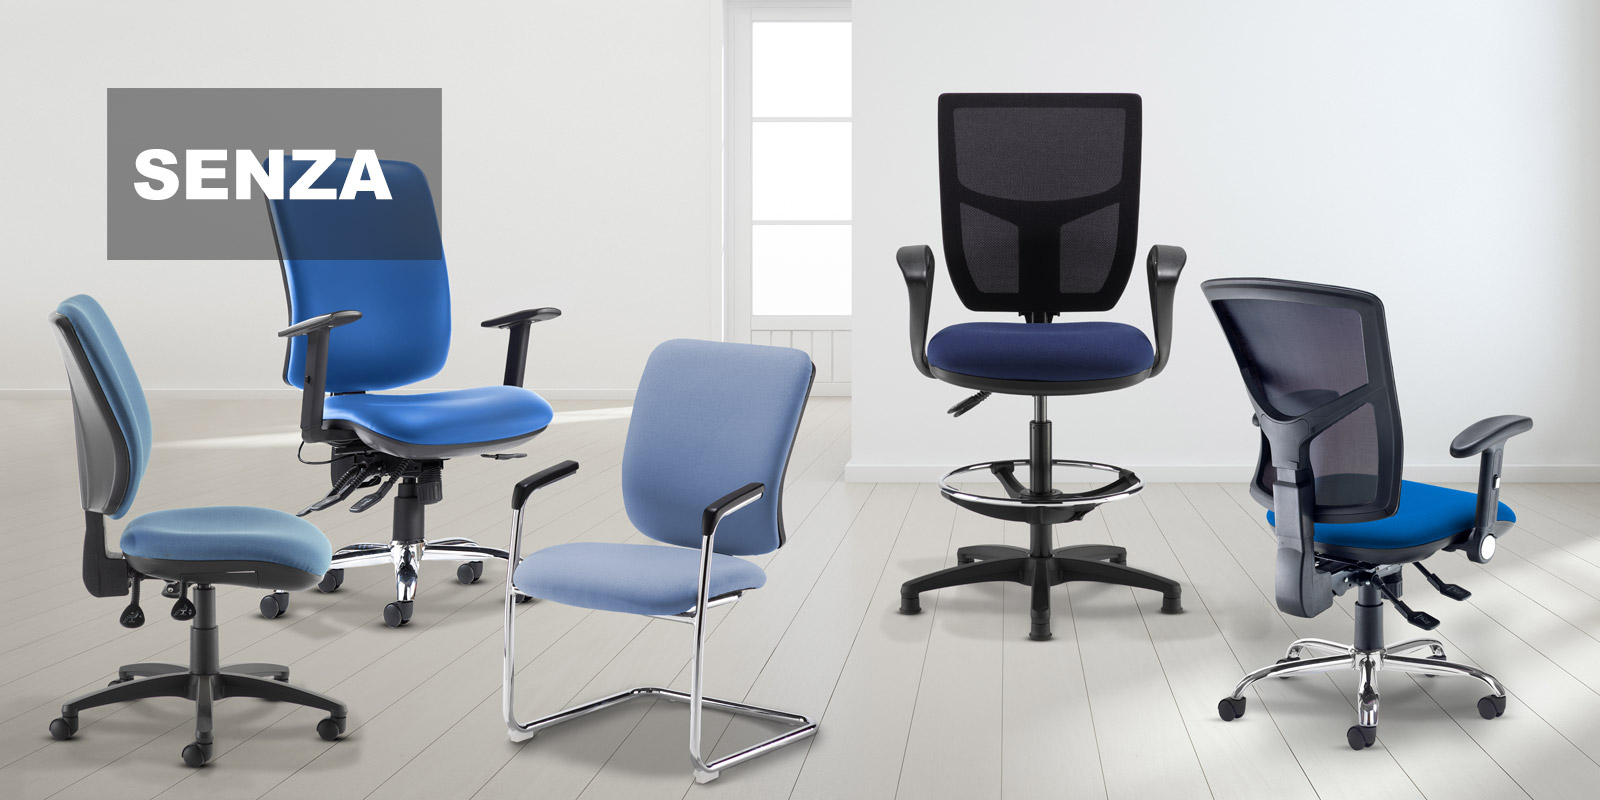 senza seating family